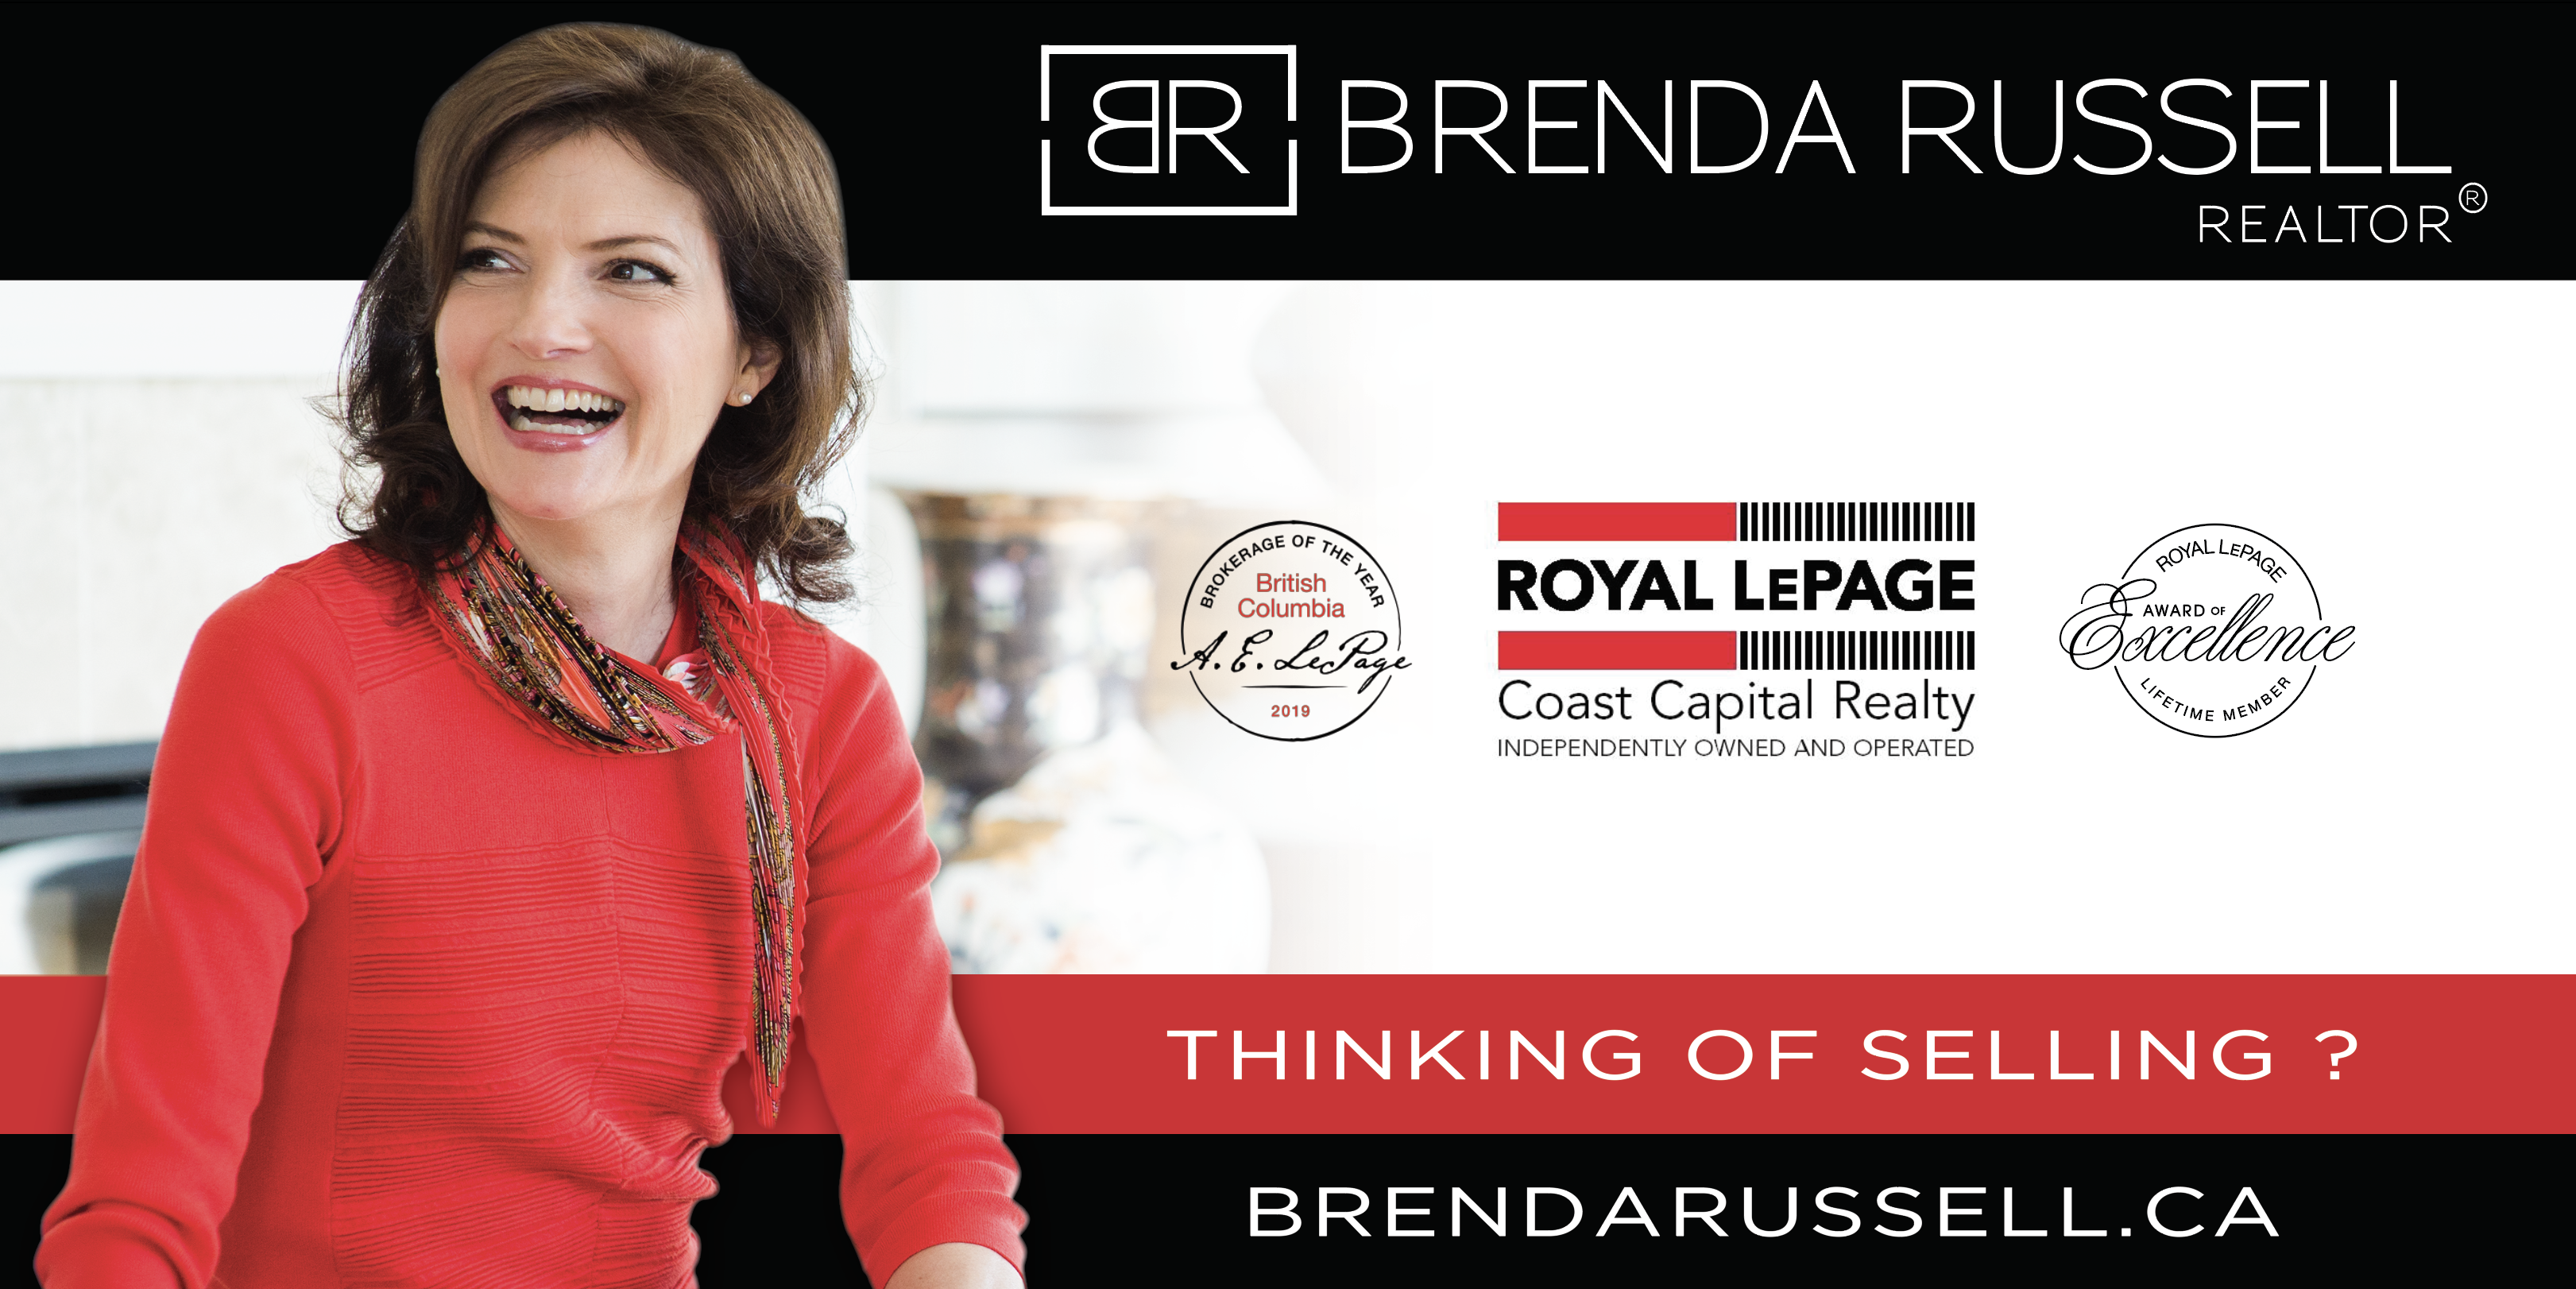 Oak Bay Realtor with Royal LePage - Brenda Russell.png